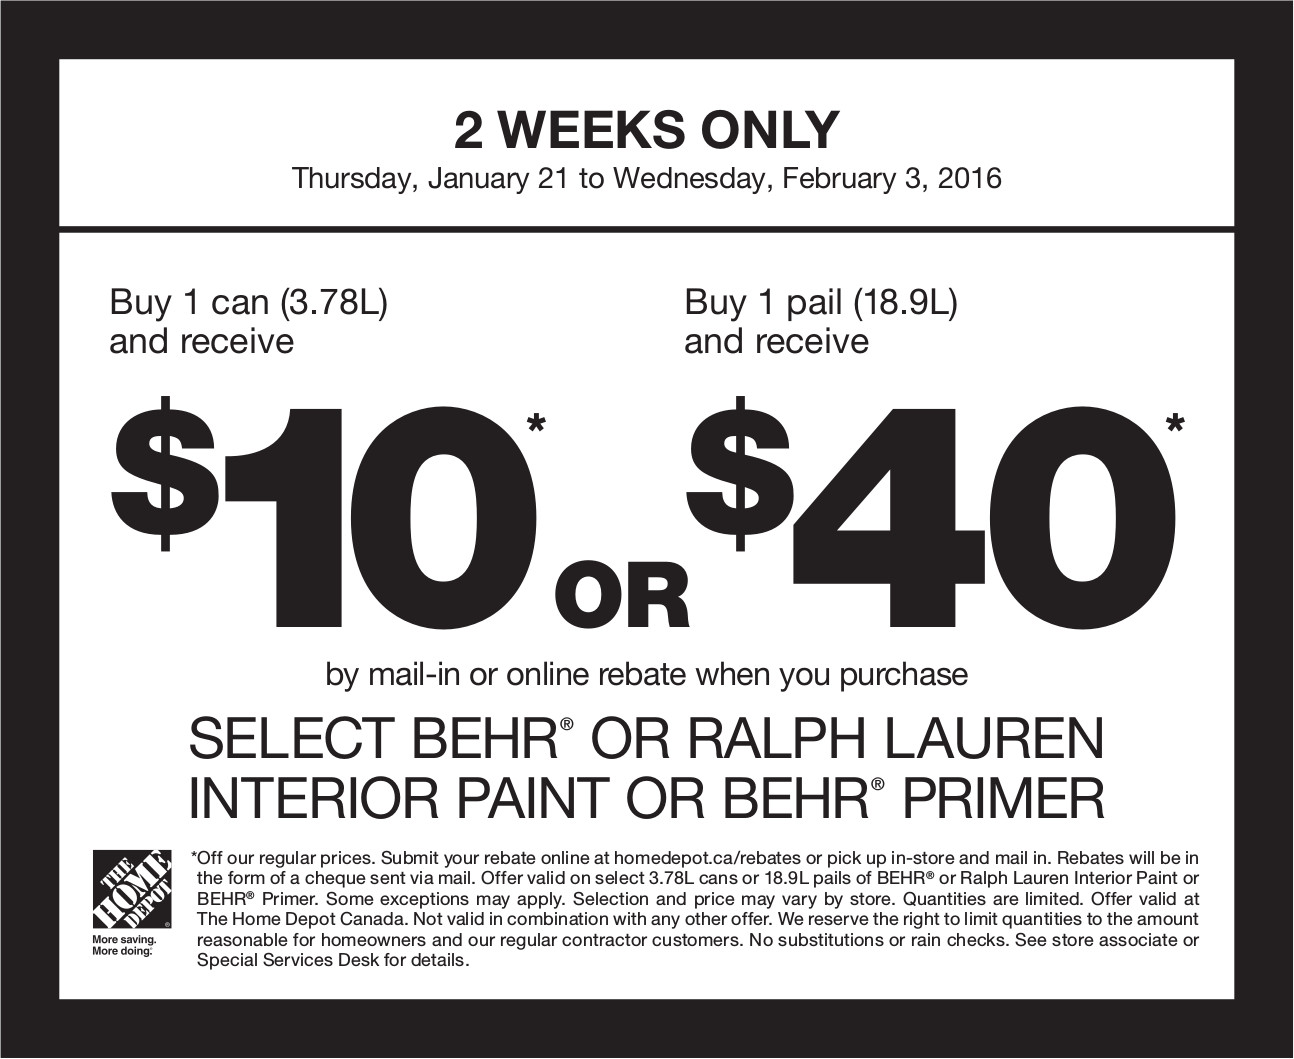 Home Depot Canada Paint Rebate Offer: Buy 1 Can (3.78L) and ...